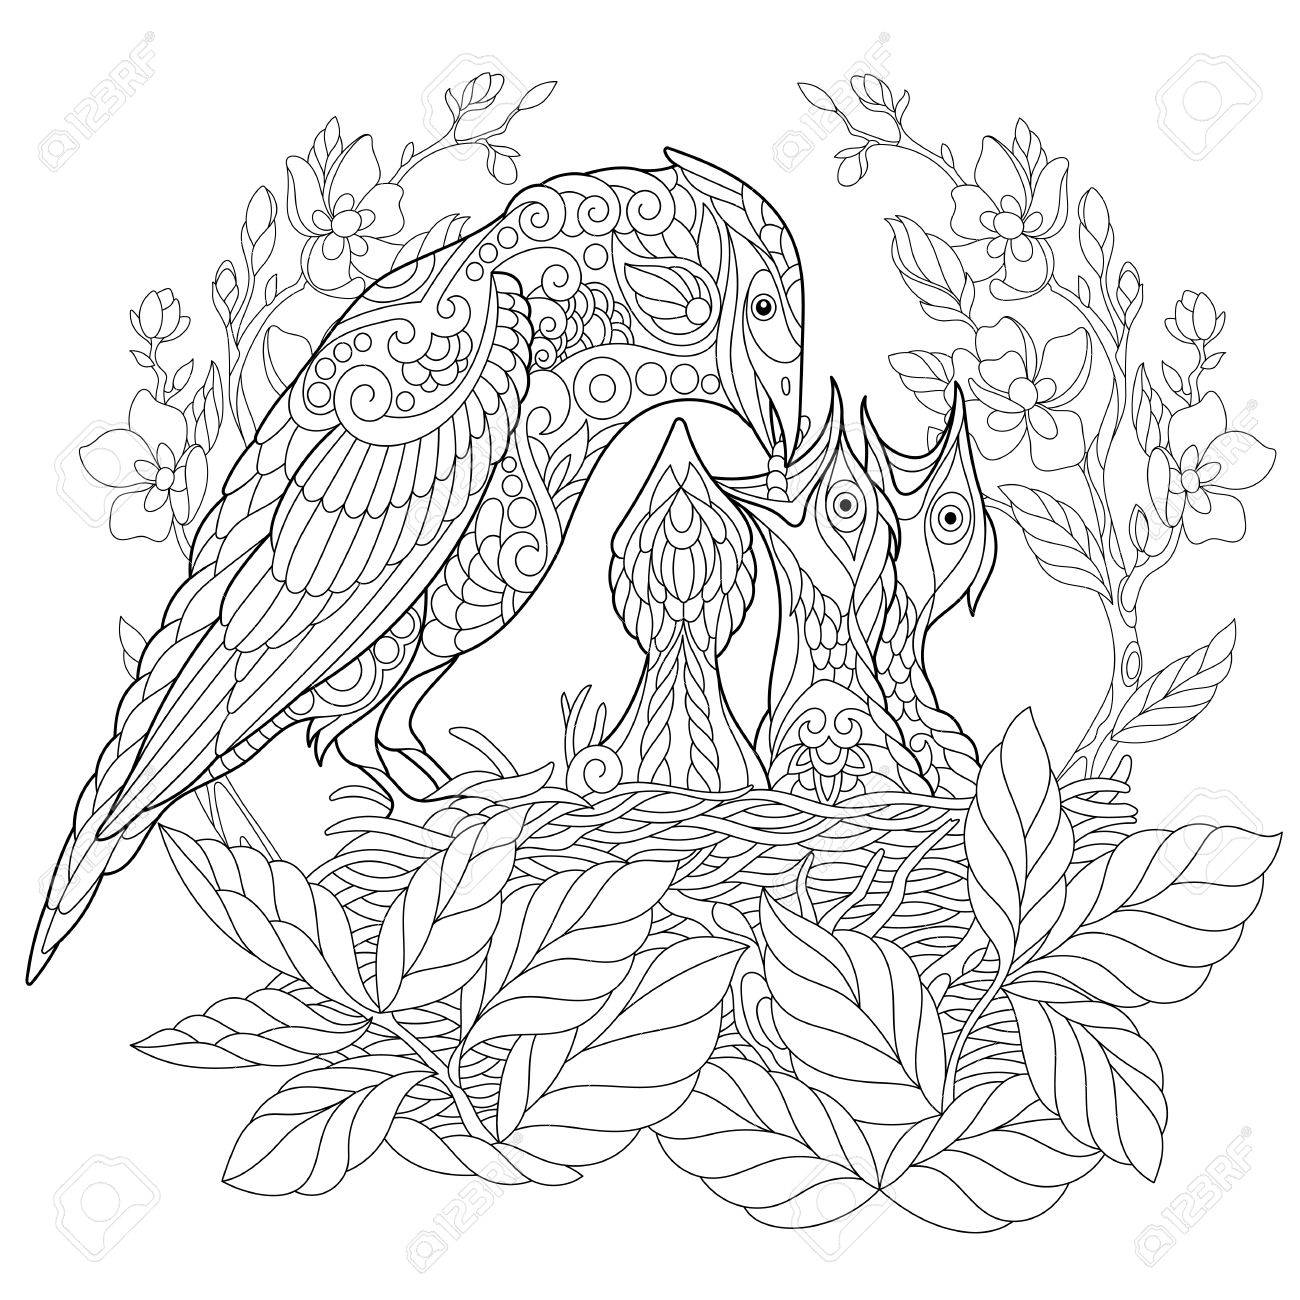 Coloring Book Page Of Jay Bird Feeding Its Newborn Nestlings Freehand Sketch Drawing For Adult